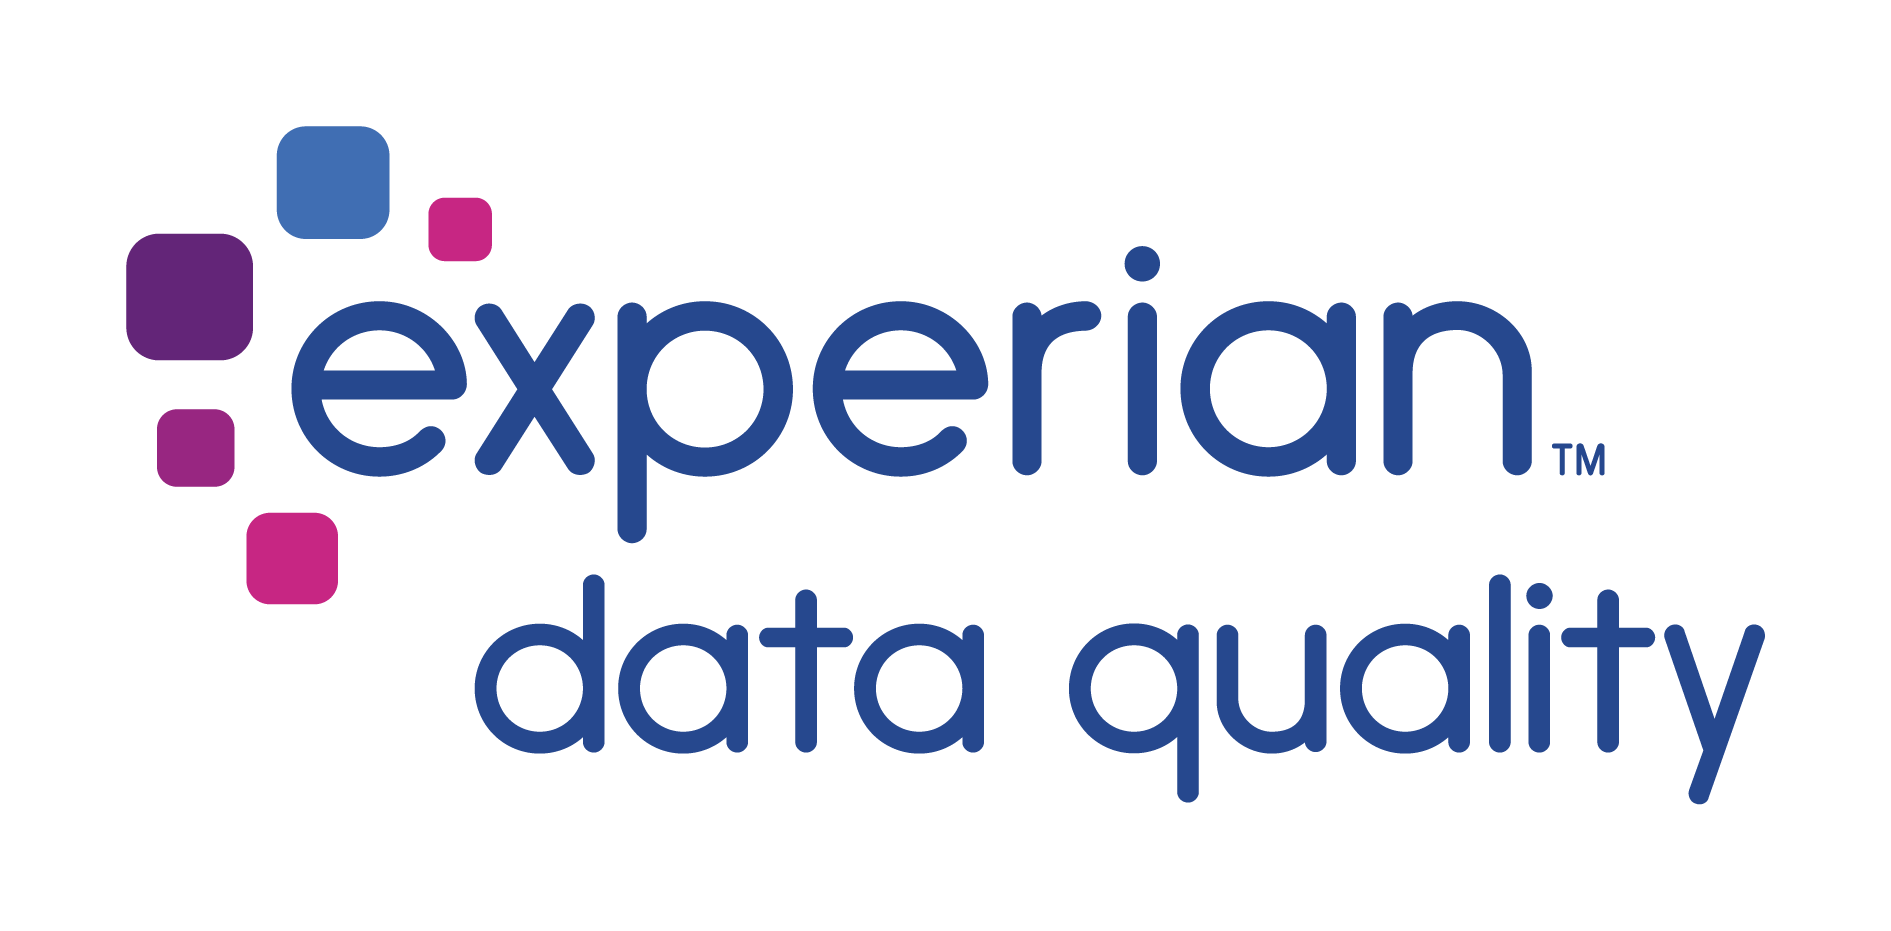 Experian Data Quality Stacked CMYK